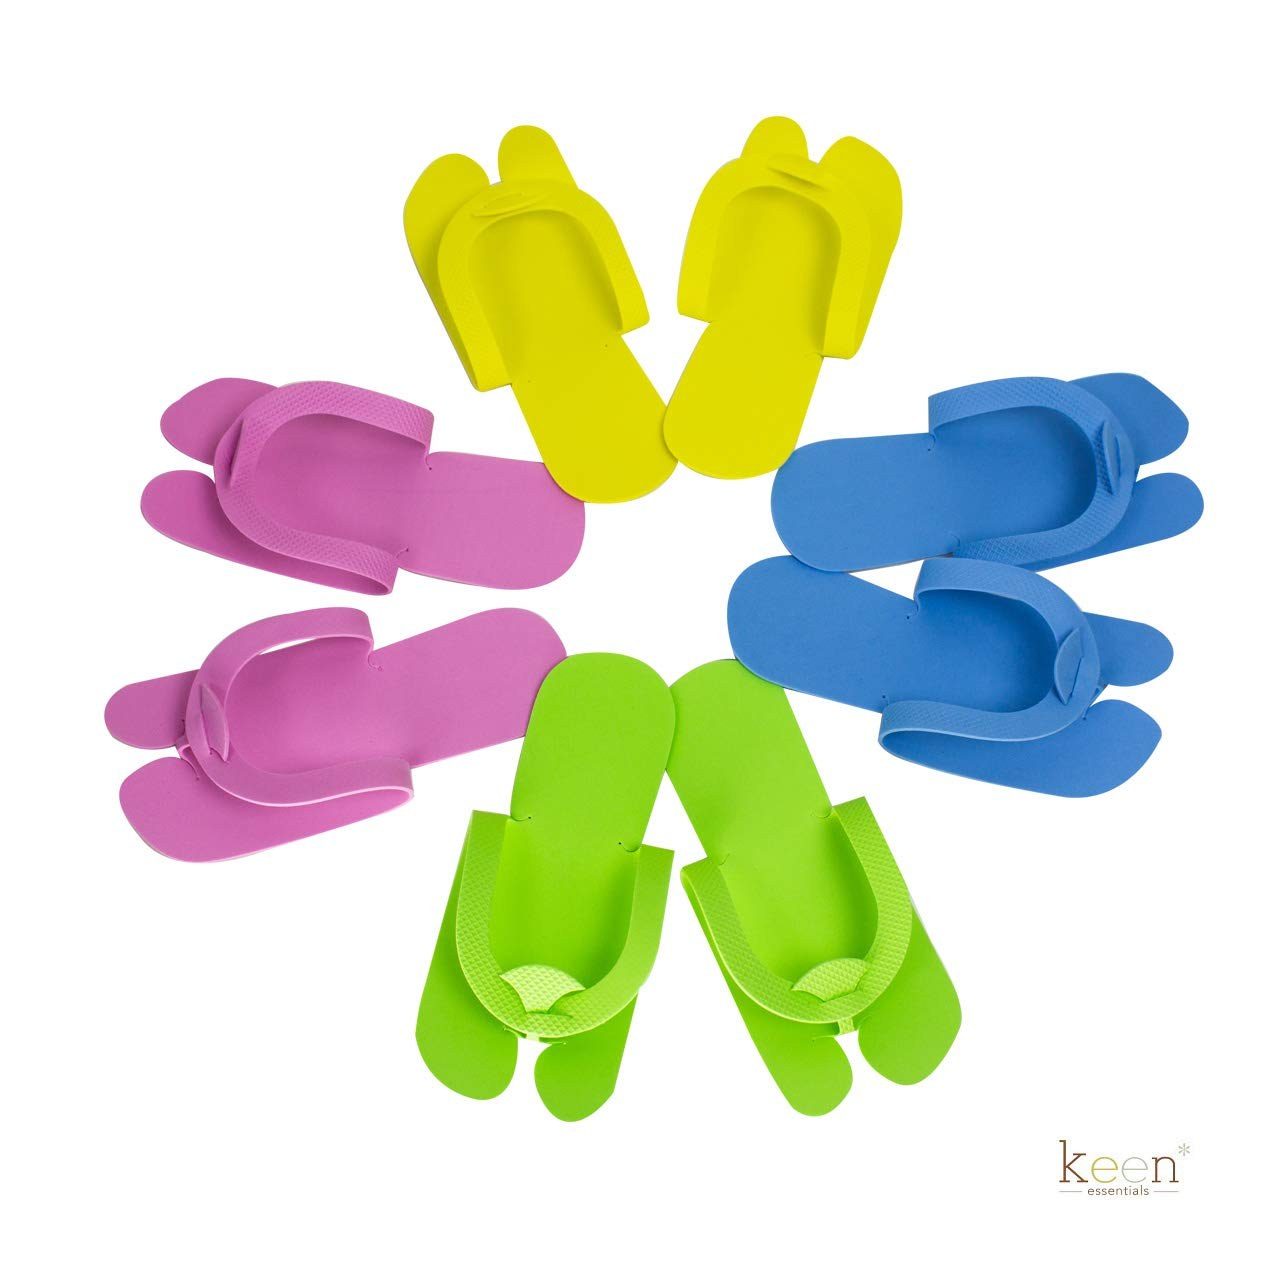 360 Pairs (1 case) Disposable Pedicure Slippers HOOKING Style, Foam Flip Flop Slippers by KEEN ESSENTIALS